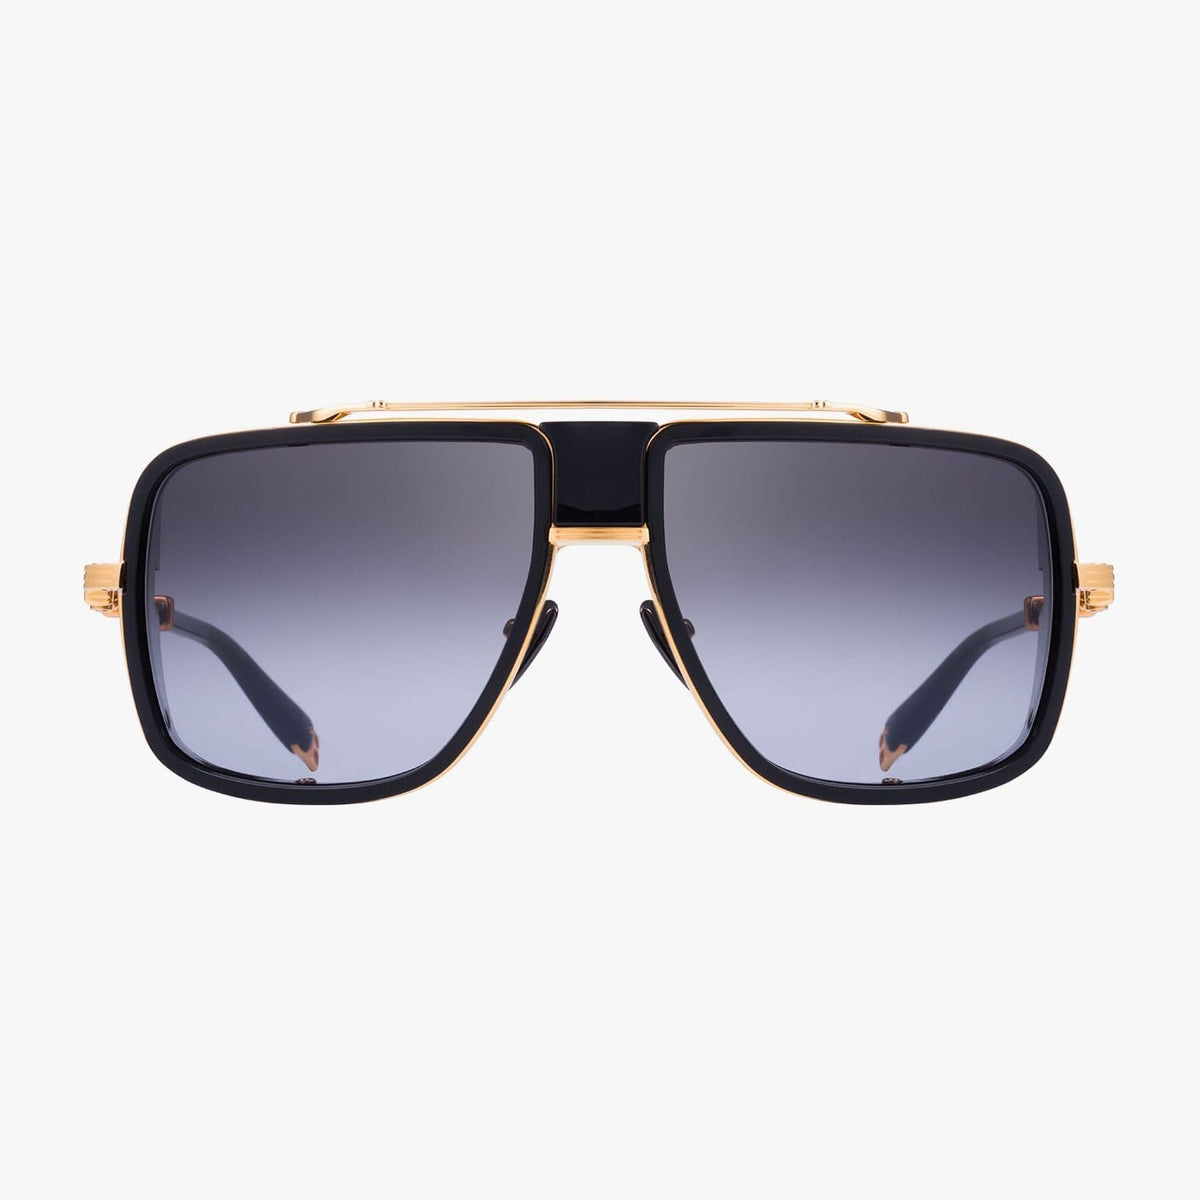 Balmain Unisex Gold-Tone And Black Metal O.R. Sunglasses